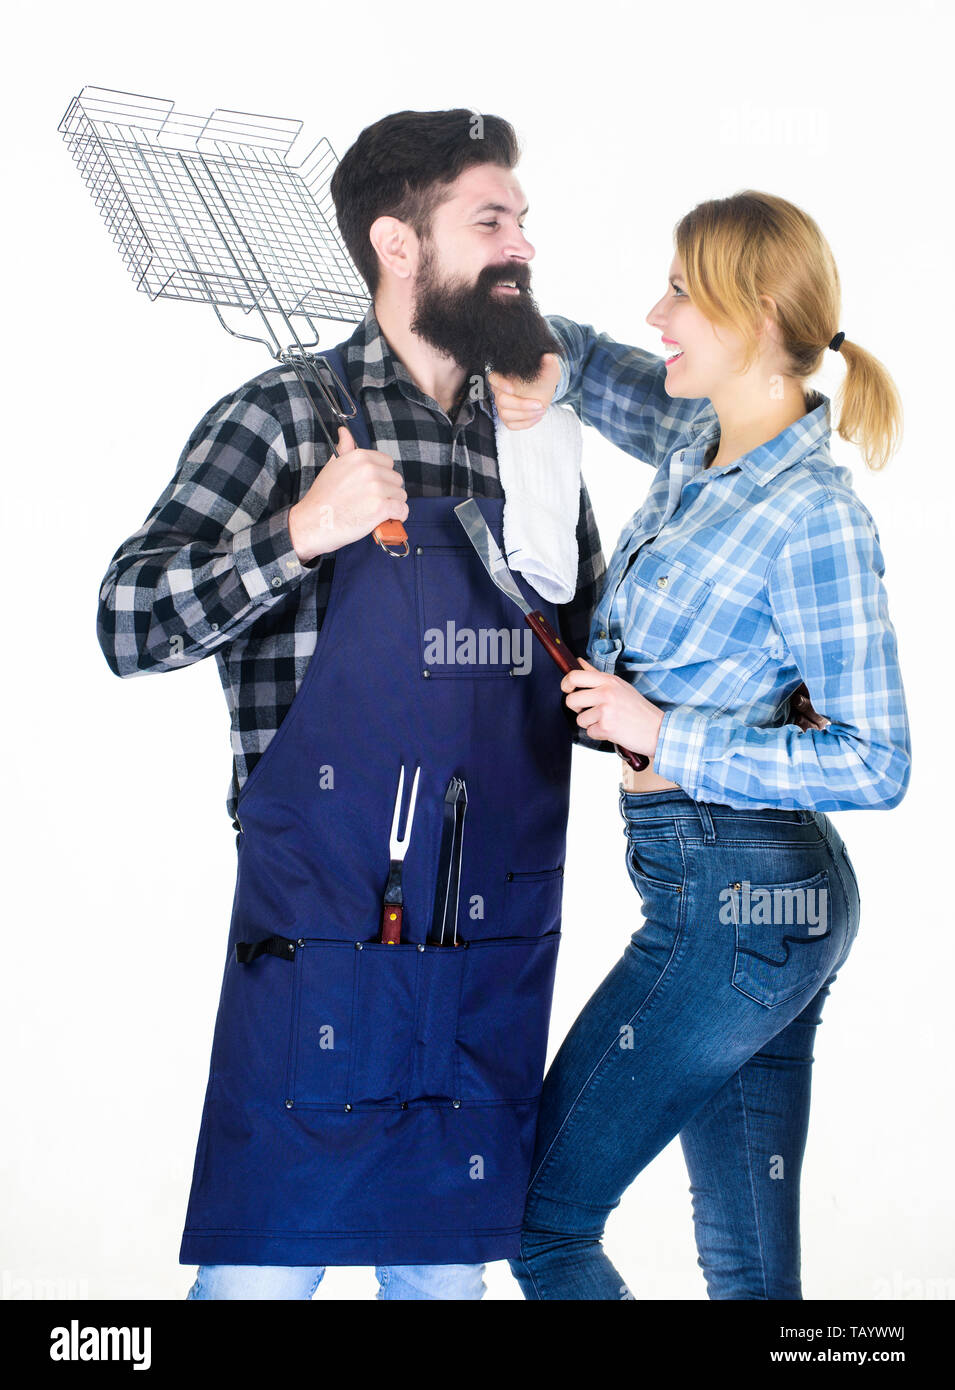 Tools for roasting meat. Family weekend. Man bearded hipster and girl. Preparation and culinary. Couple in love hold kitchen utensils. Picnic barbecue. food cooking. Barbecuing meat to perfection. - Stock Image